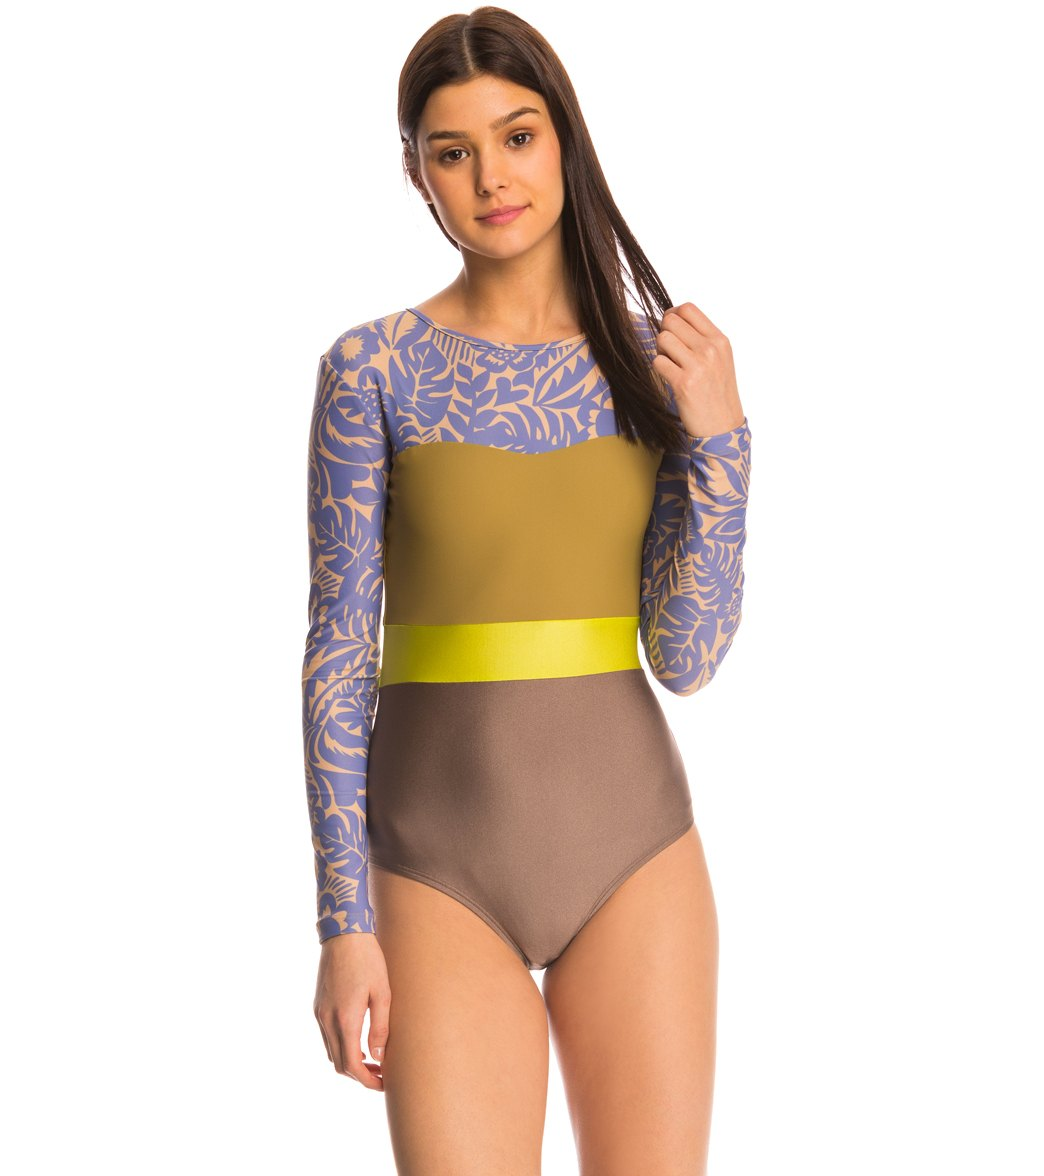 a6cf434a6bb76 Seea Dawn Hermosa L S One Piece Swimsuit at SwimOutlet.com ...